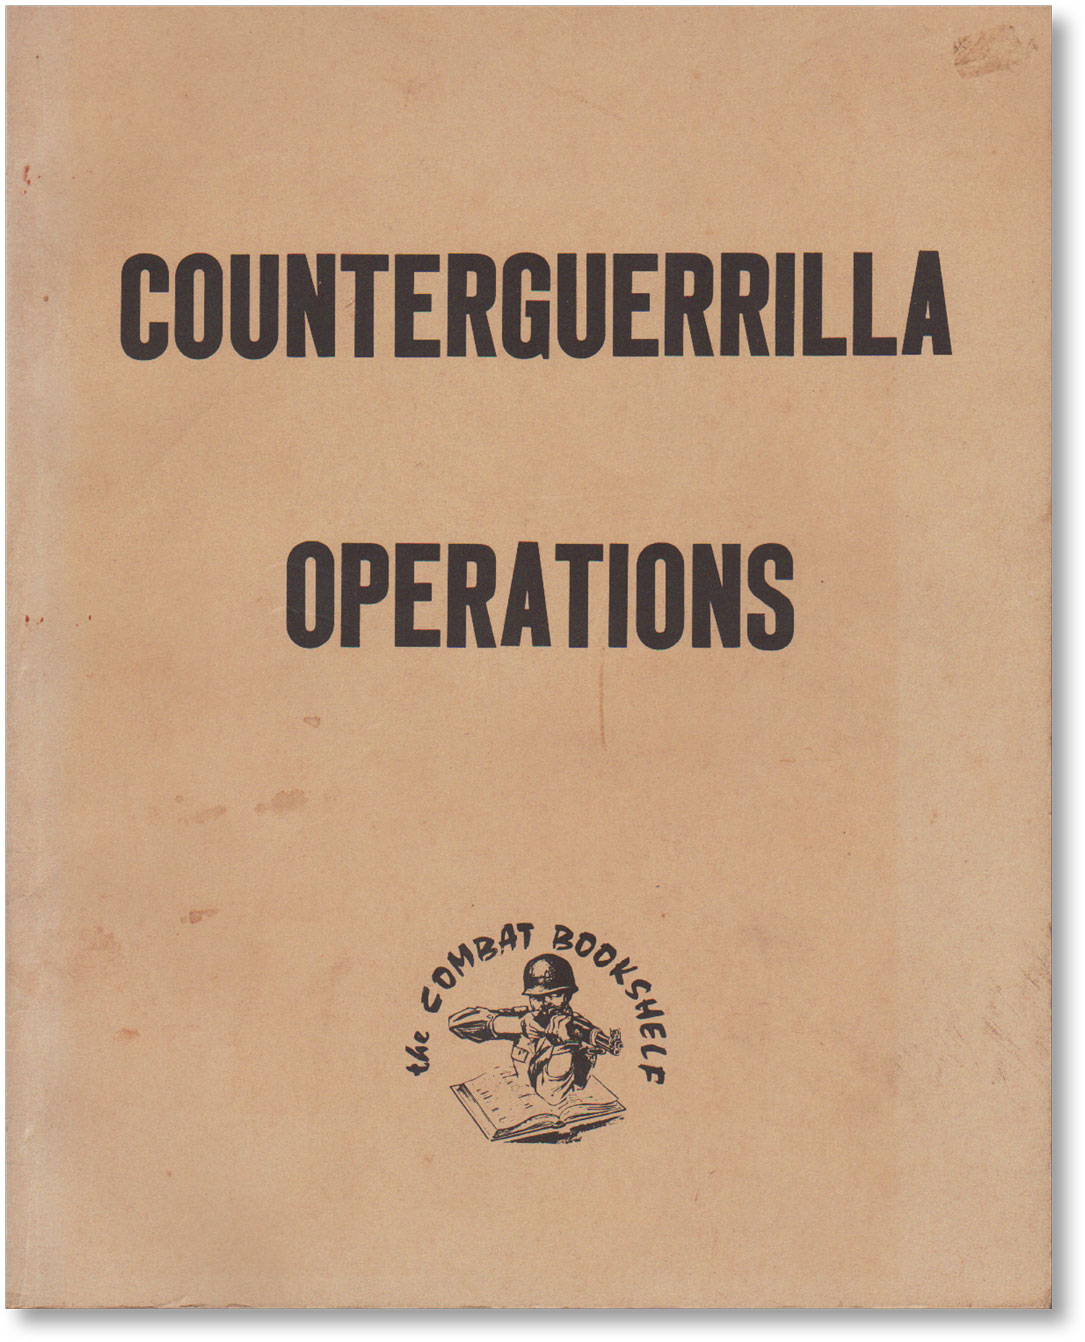 Field Manual No. 31-16: Counterguerrilla Operations. TERRORISM, COUNTER-TERRORISM.